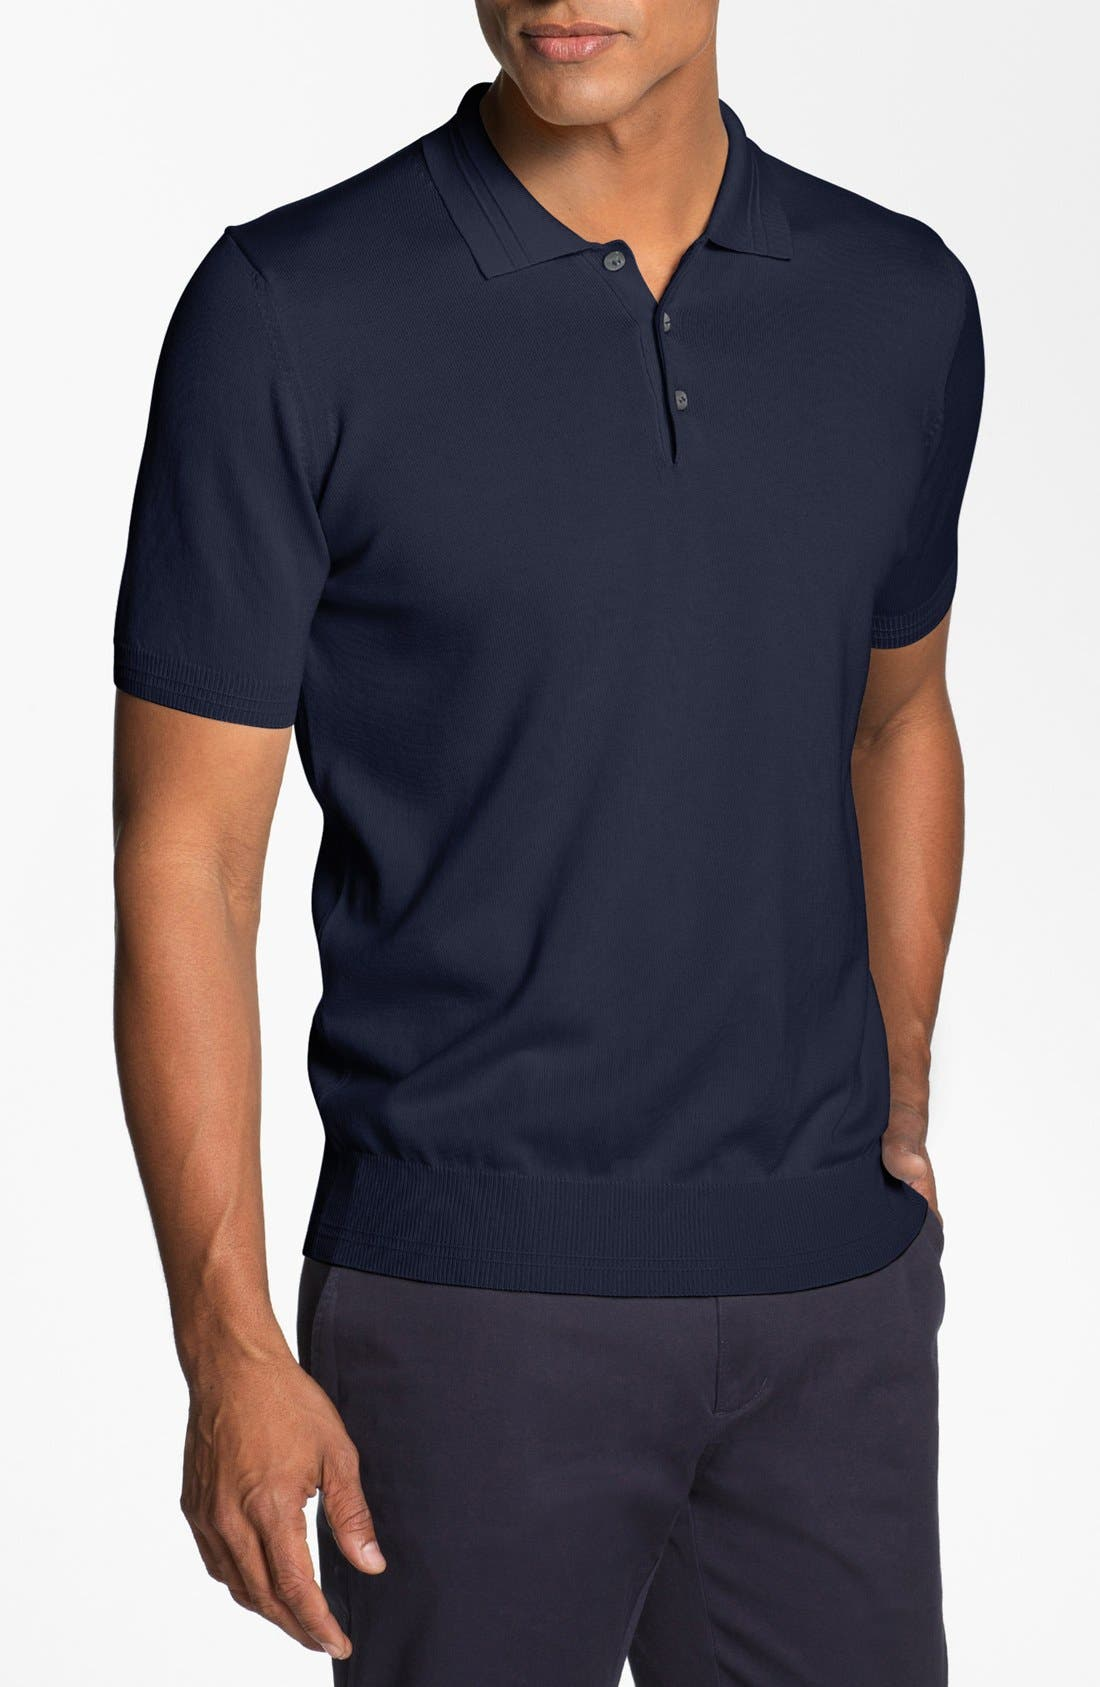 Alternate Image 1 Selected - Canali Knit Polo